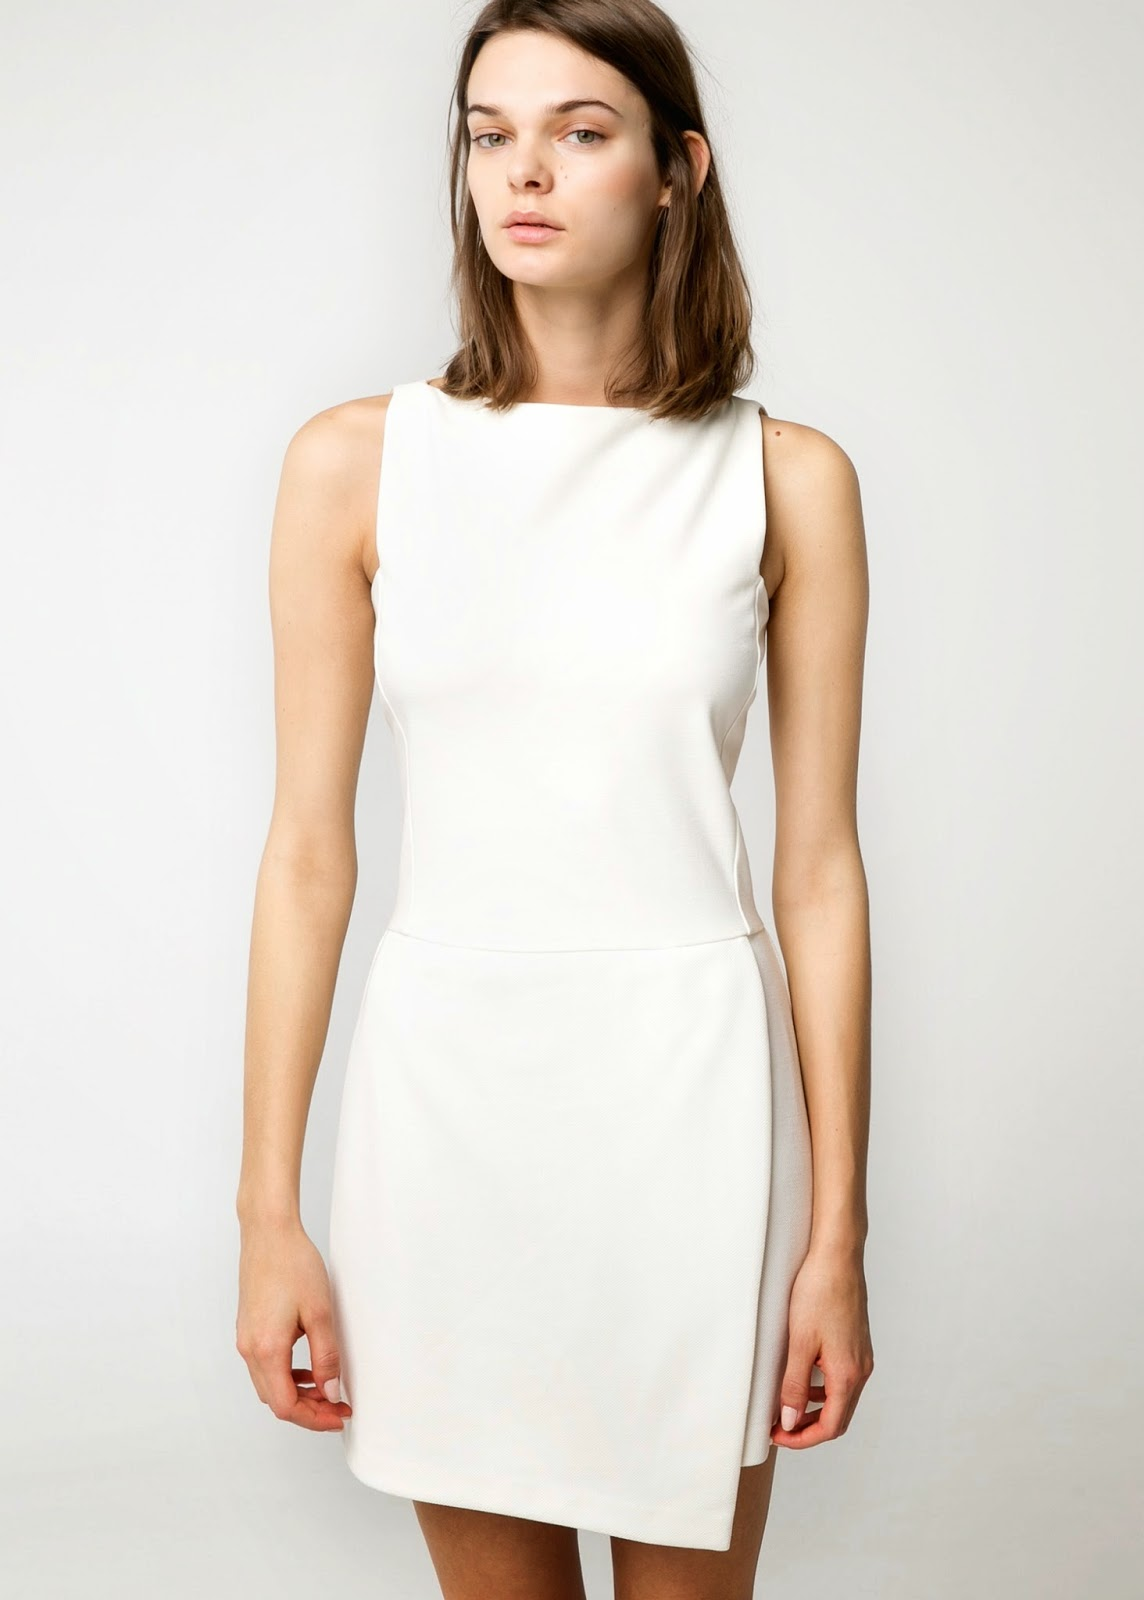 mango white dress